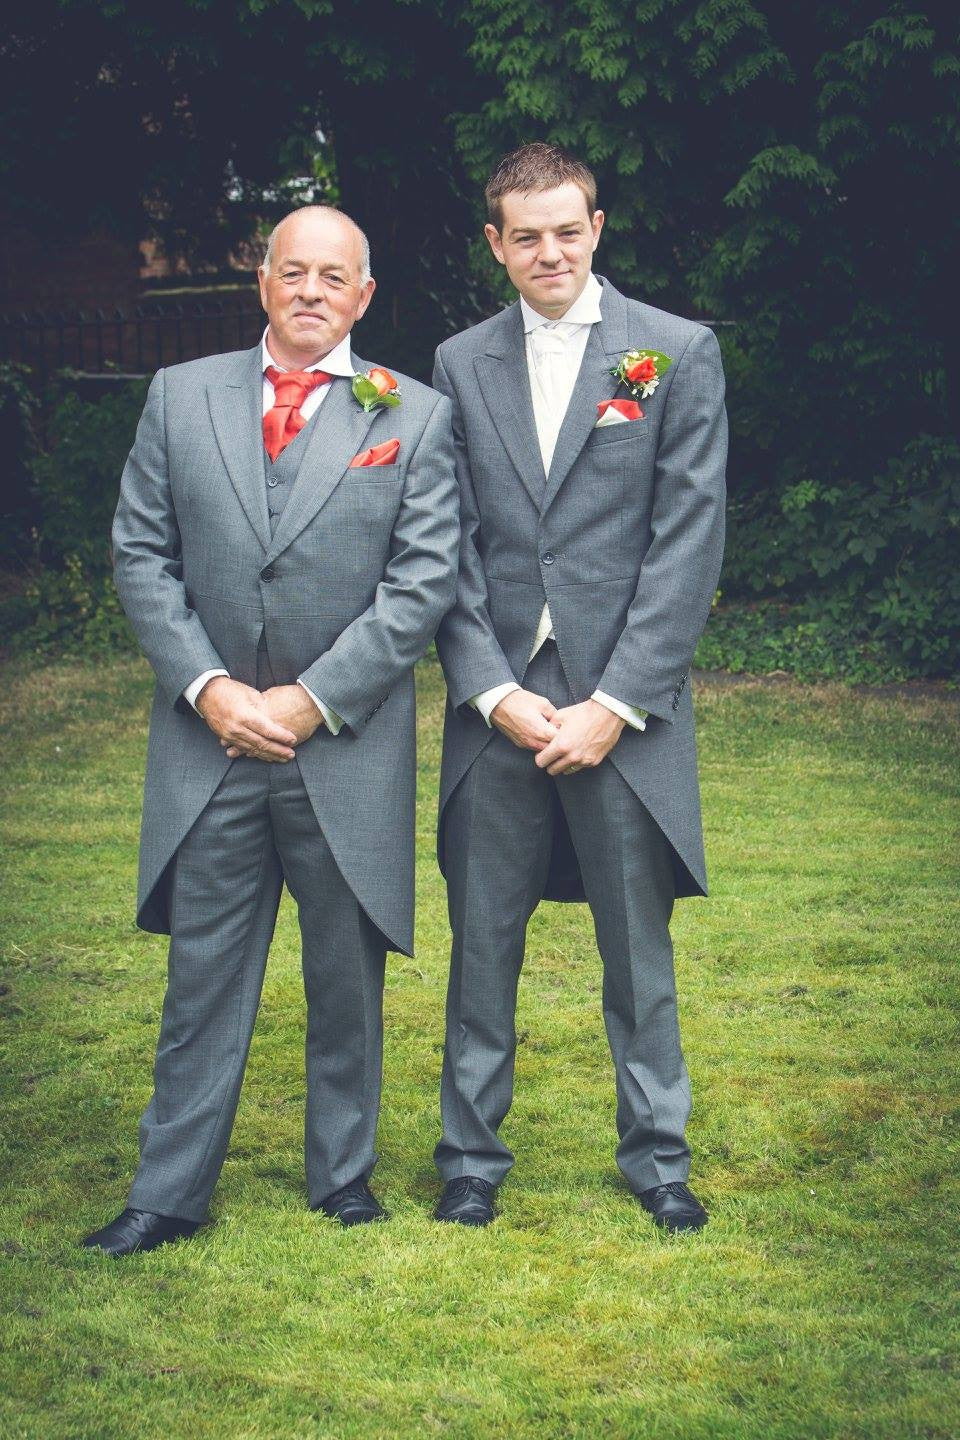 Father of the Groom and the Groom with orange Rose buttonholes.